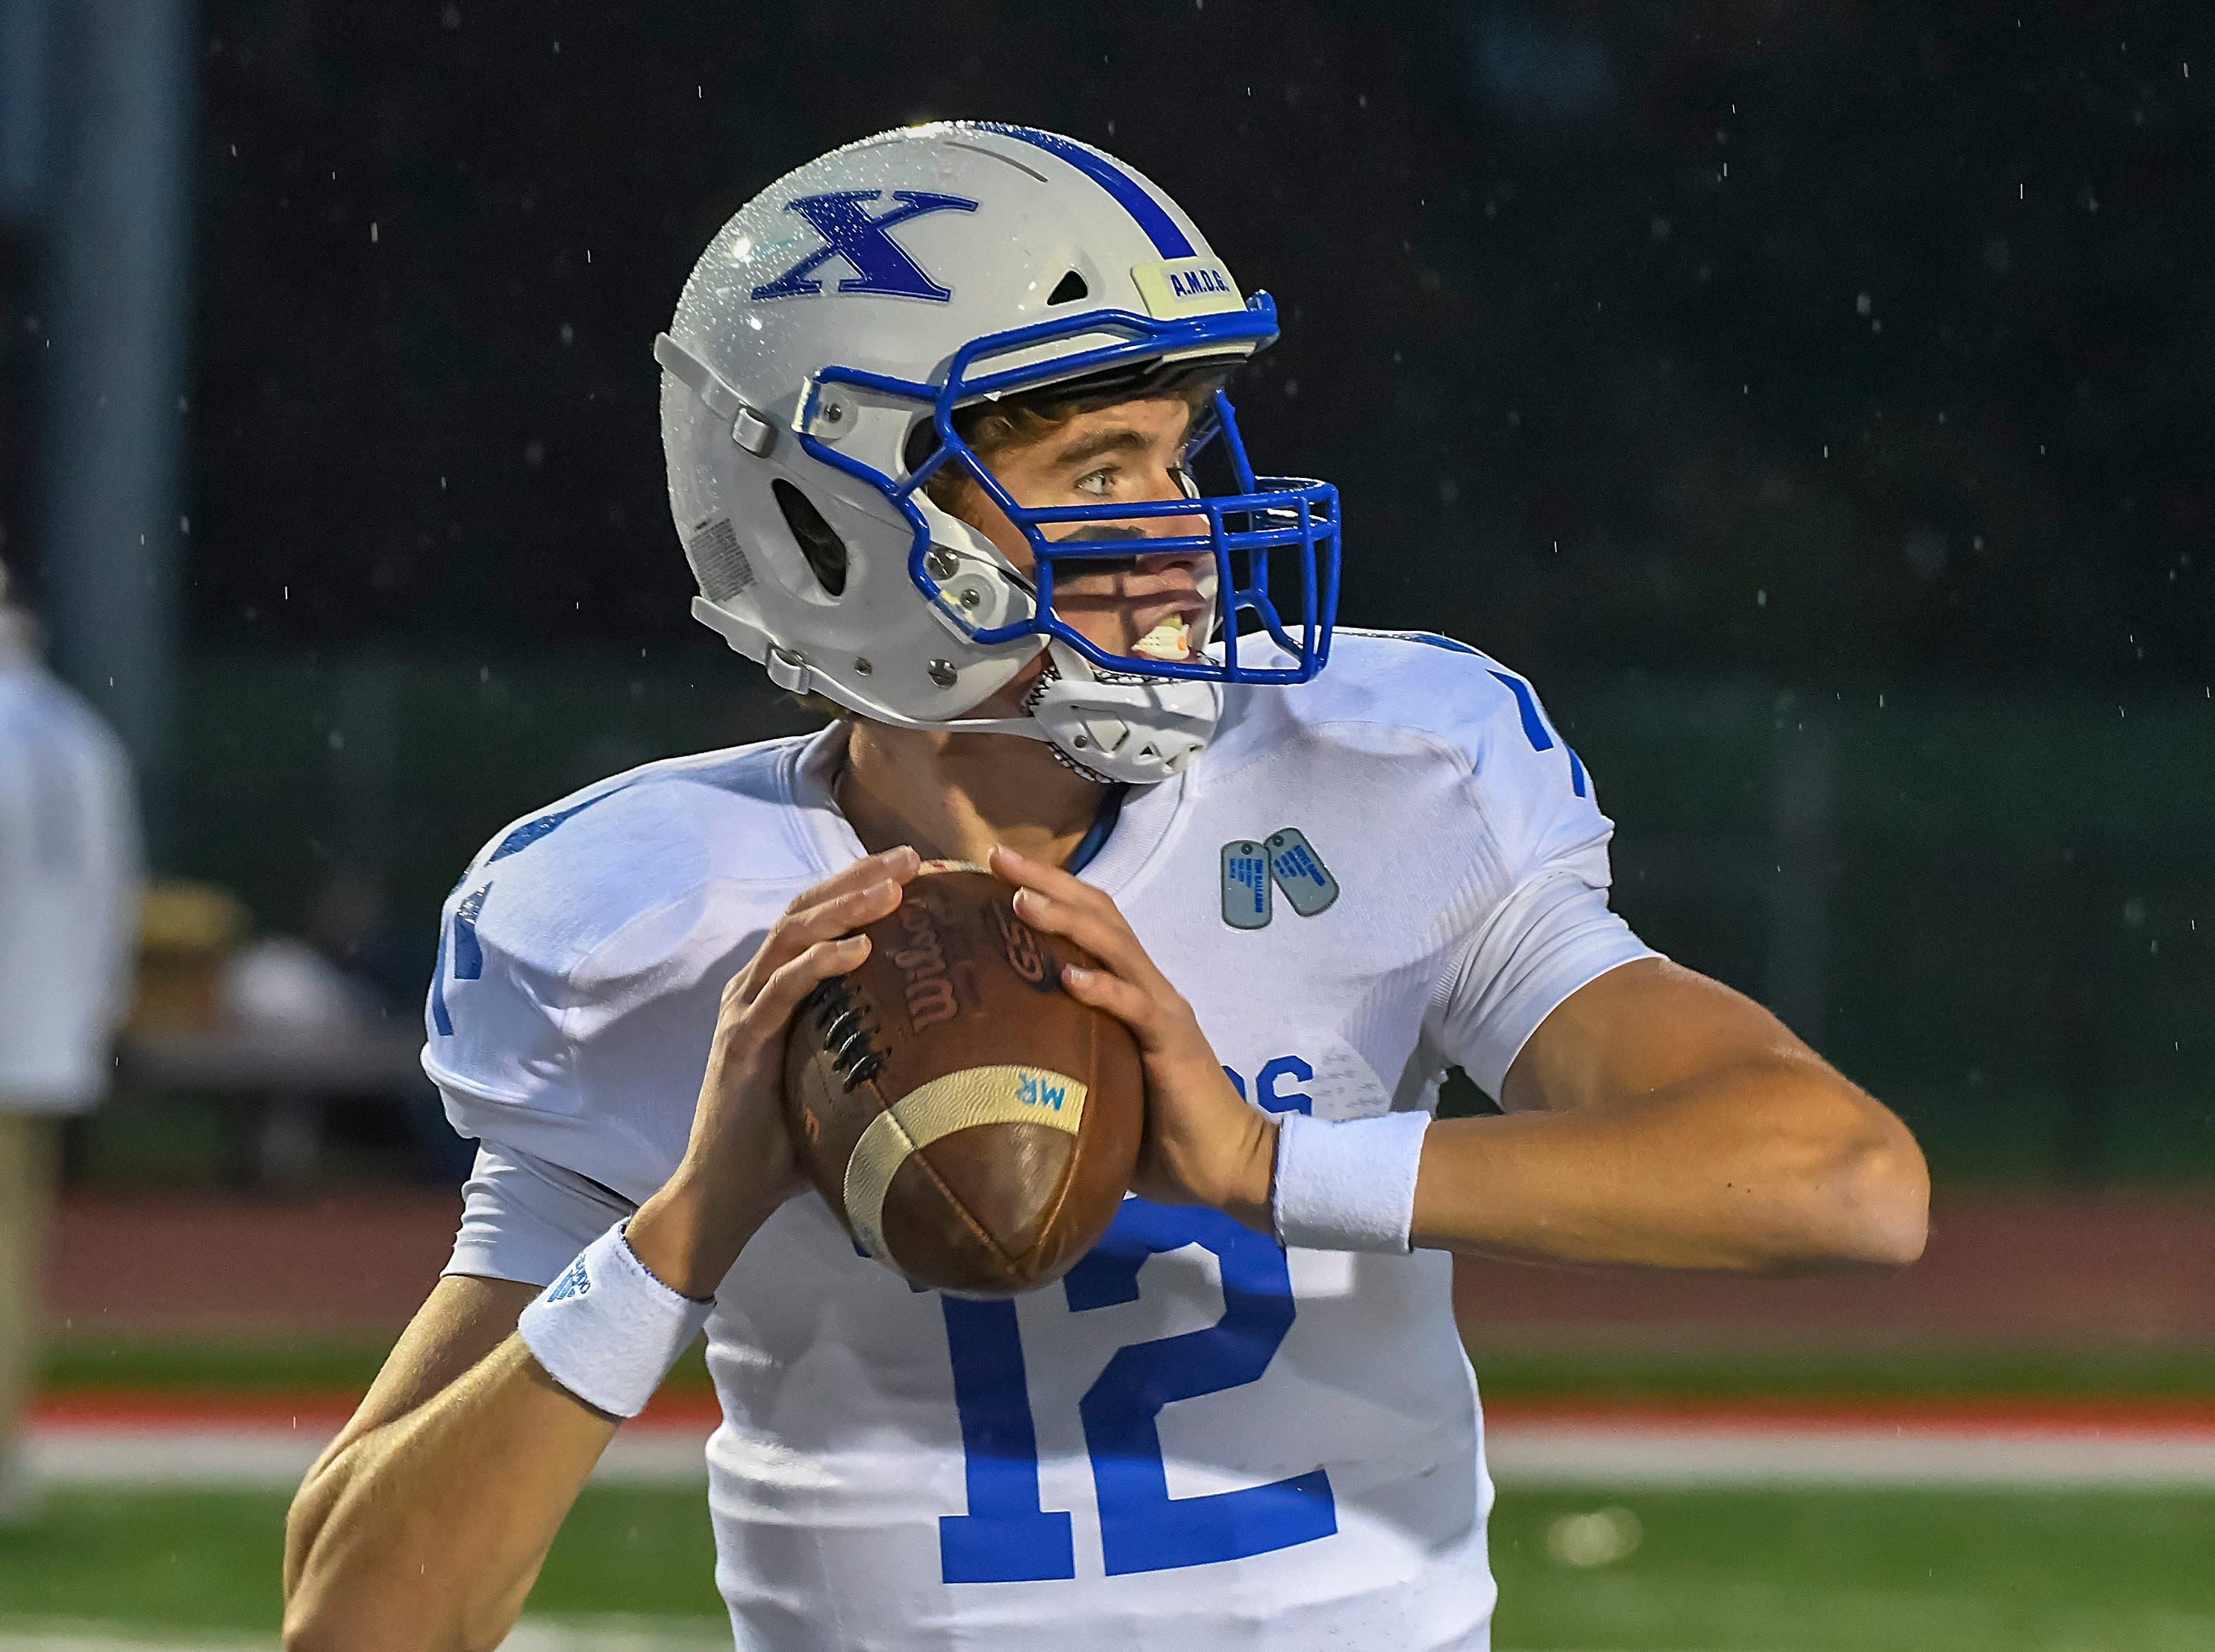 Matthew Rueve of St. X warm up before the game against Colerain in the OHSAA DI Region 4 Playoffs at Colerain High School,  Friday Nov. 2, 2018